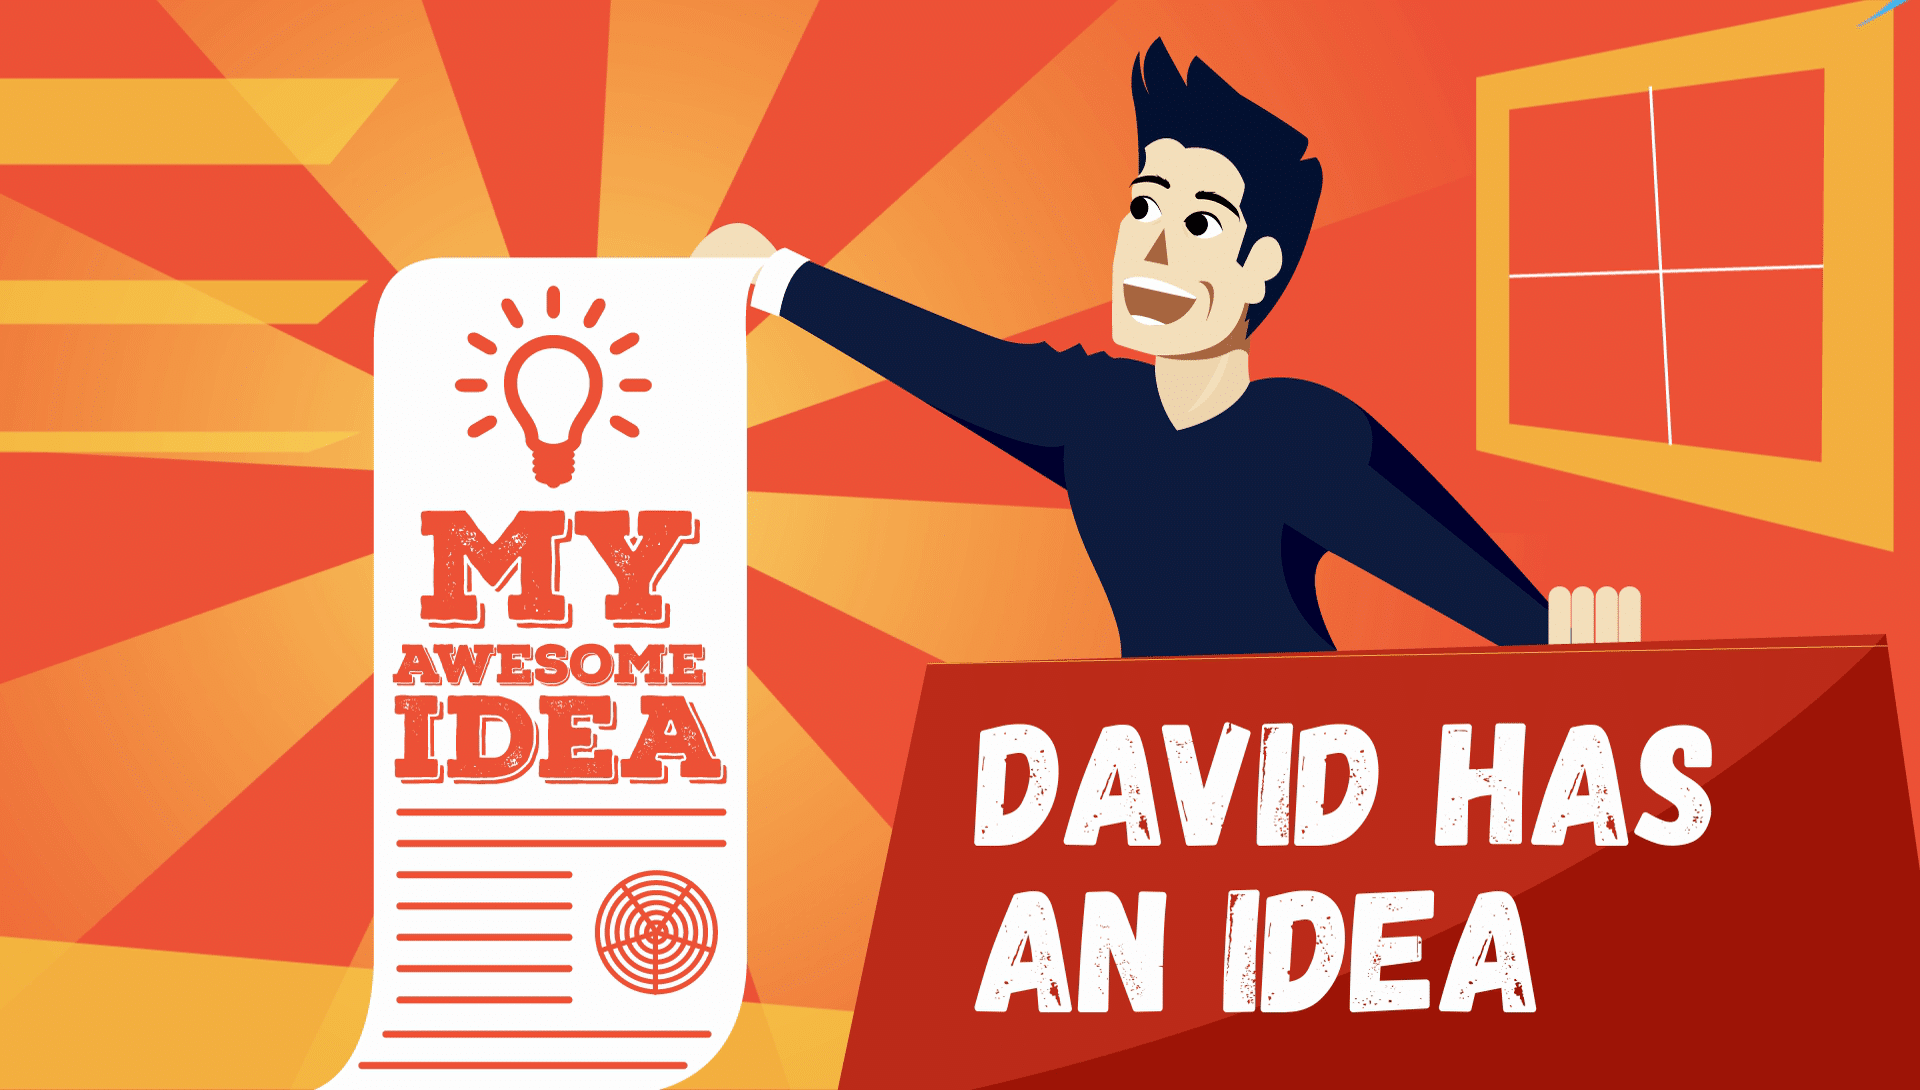 David has an idea